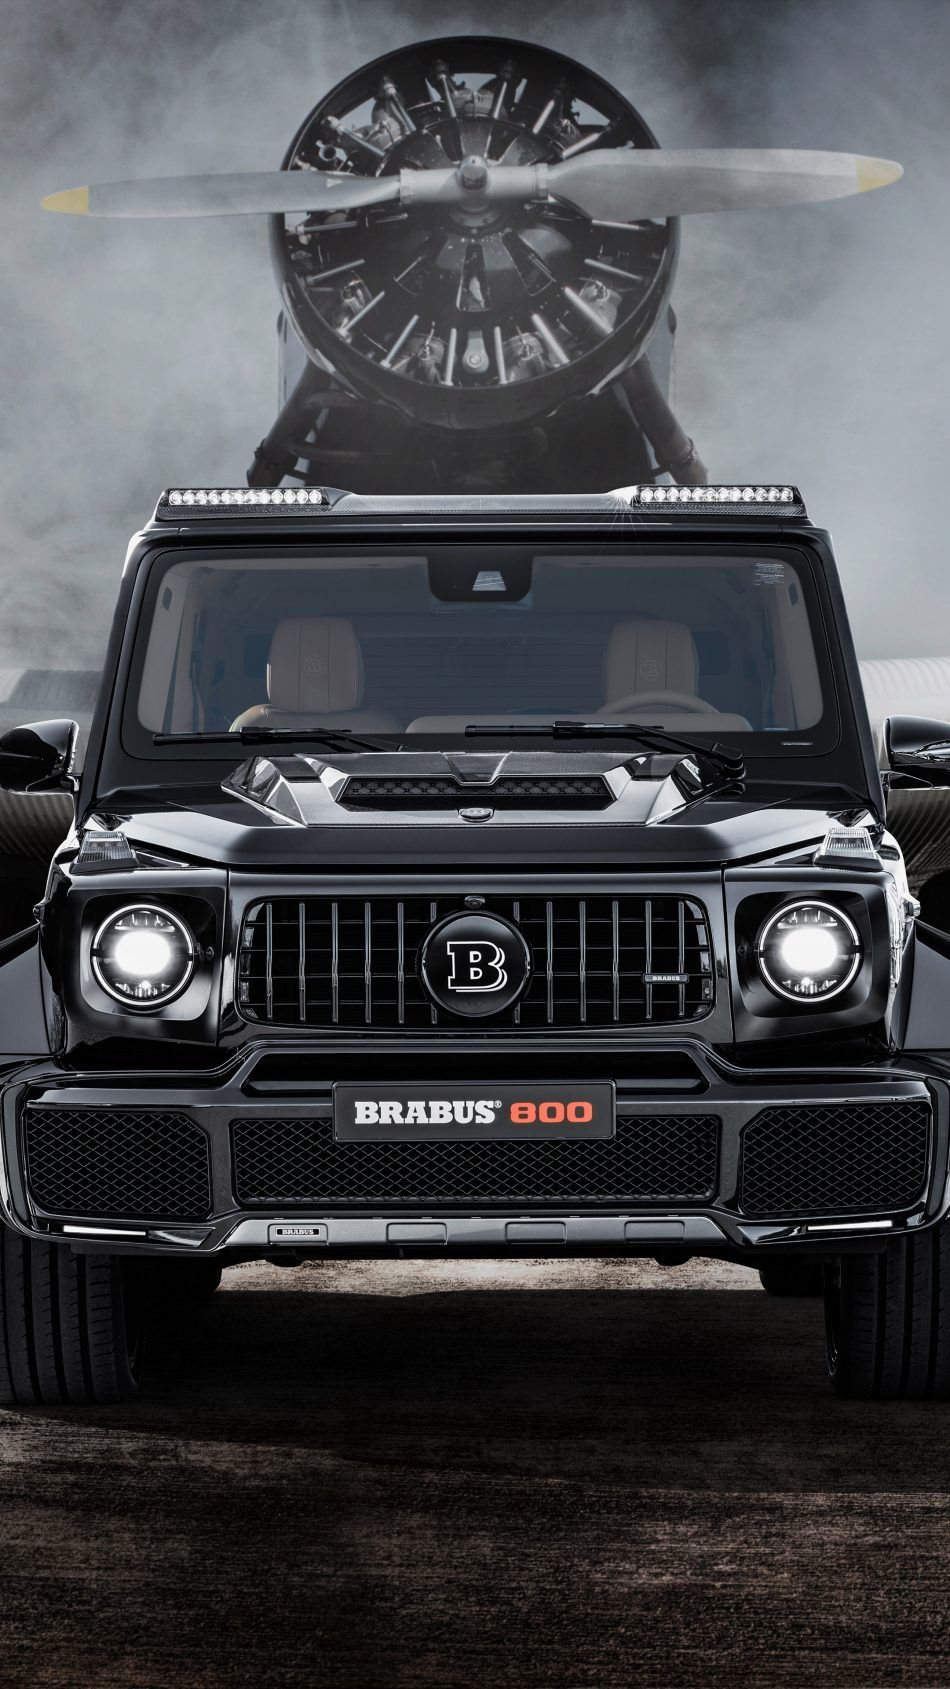 Brabus 800 Widestar In 2020 With Images Mercedes Amg Mercedes